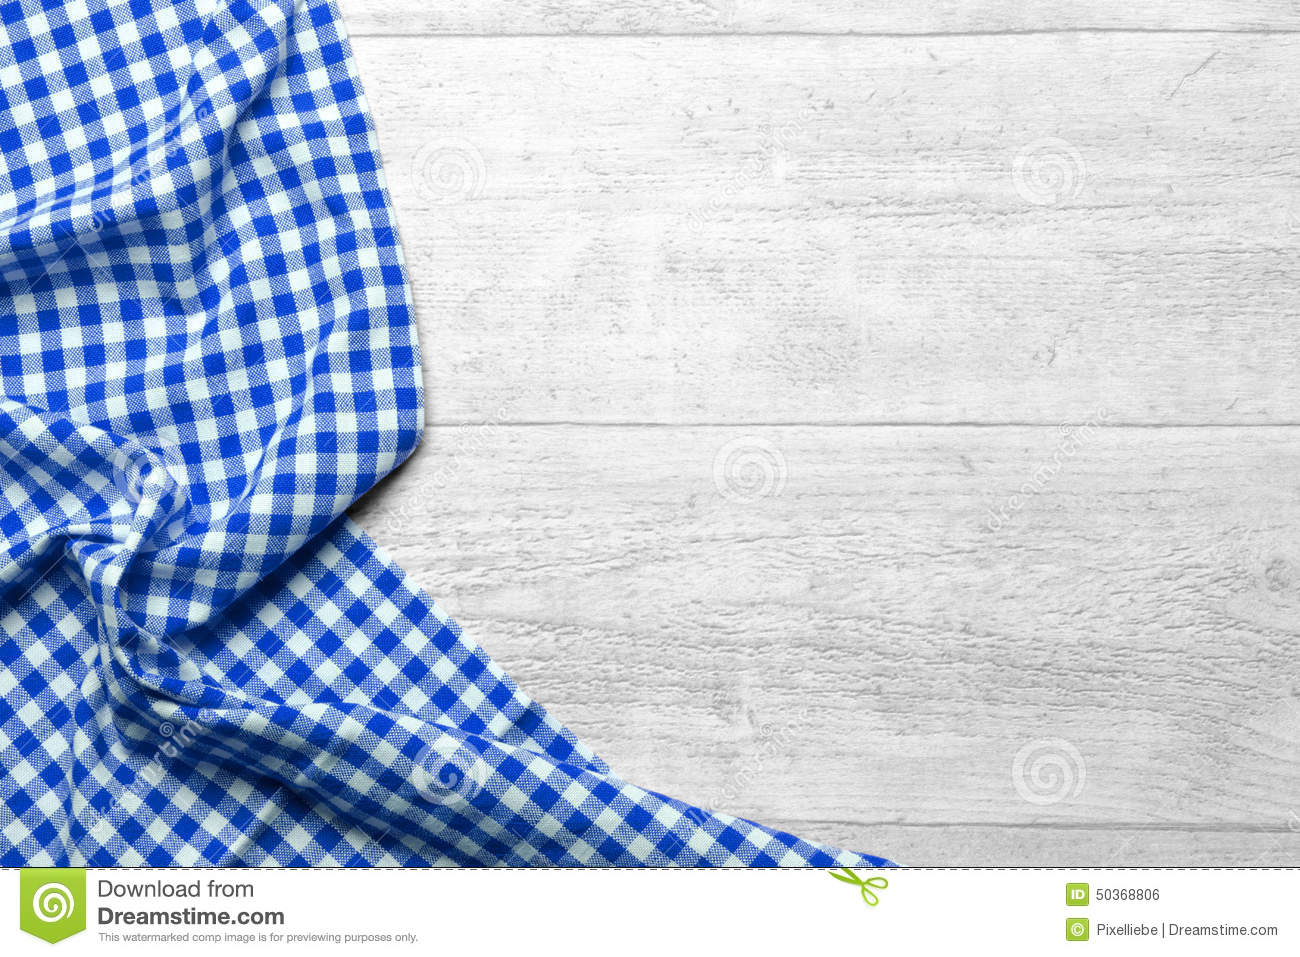 wooden background with a blue checkered tablecloth.